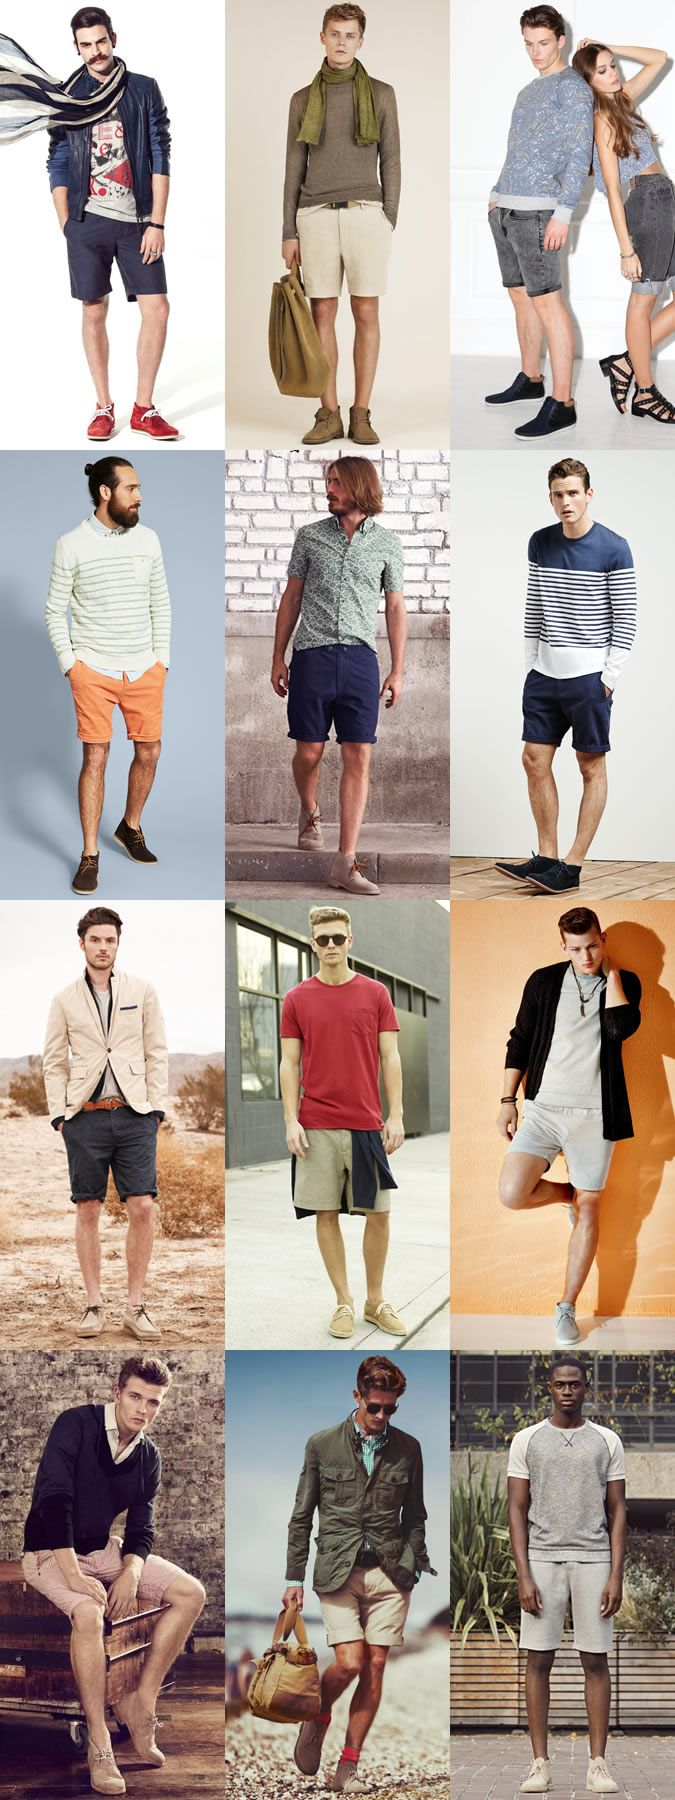 Men's Summer Style: Shorts with Boots Outfit Inspiration Lookbook